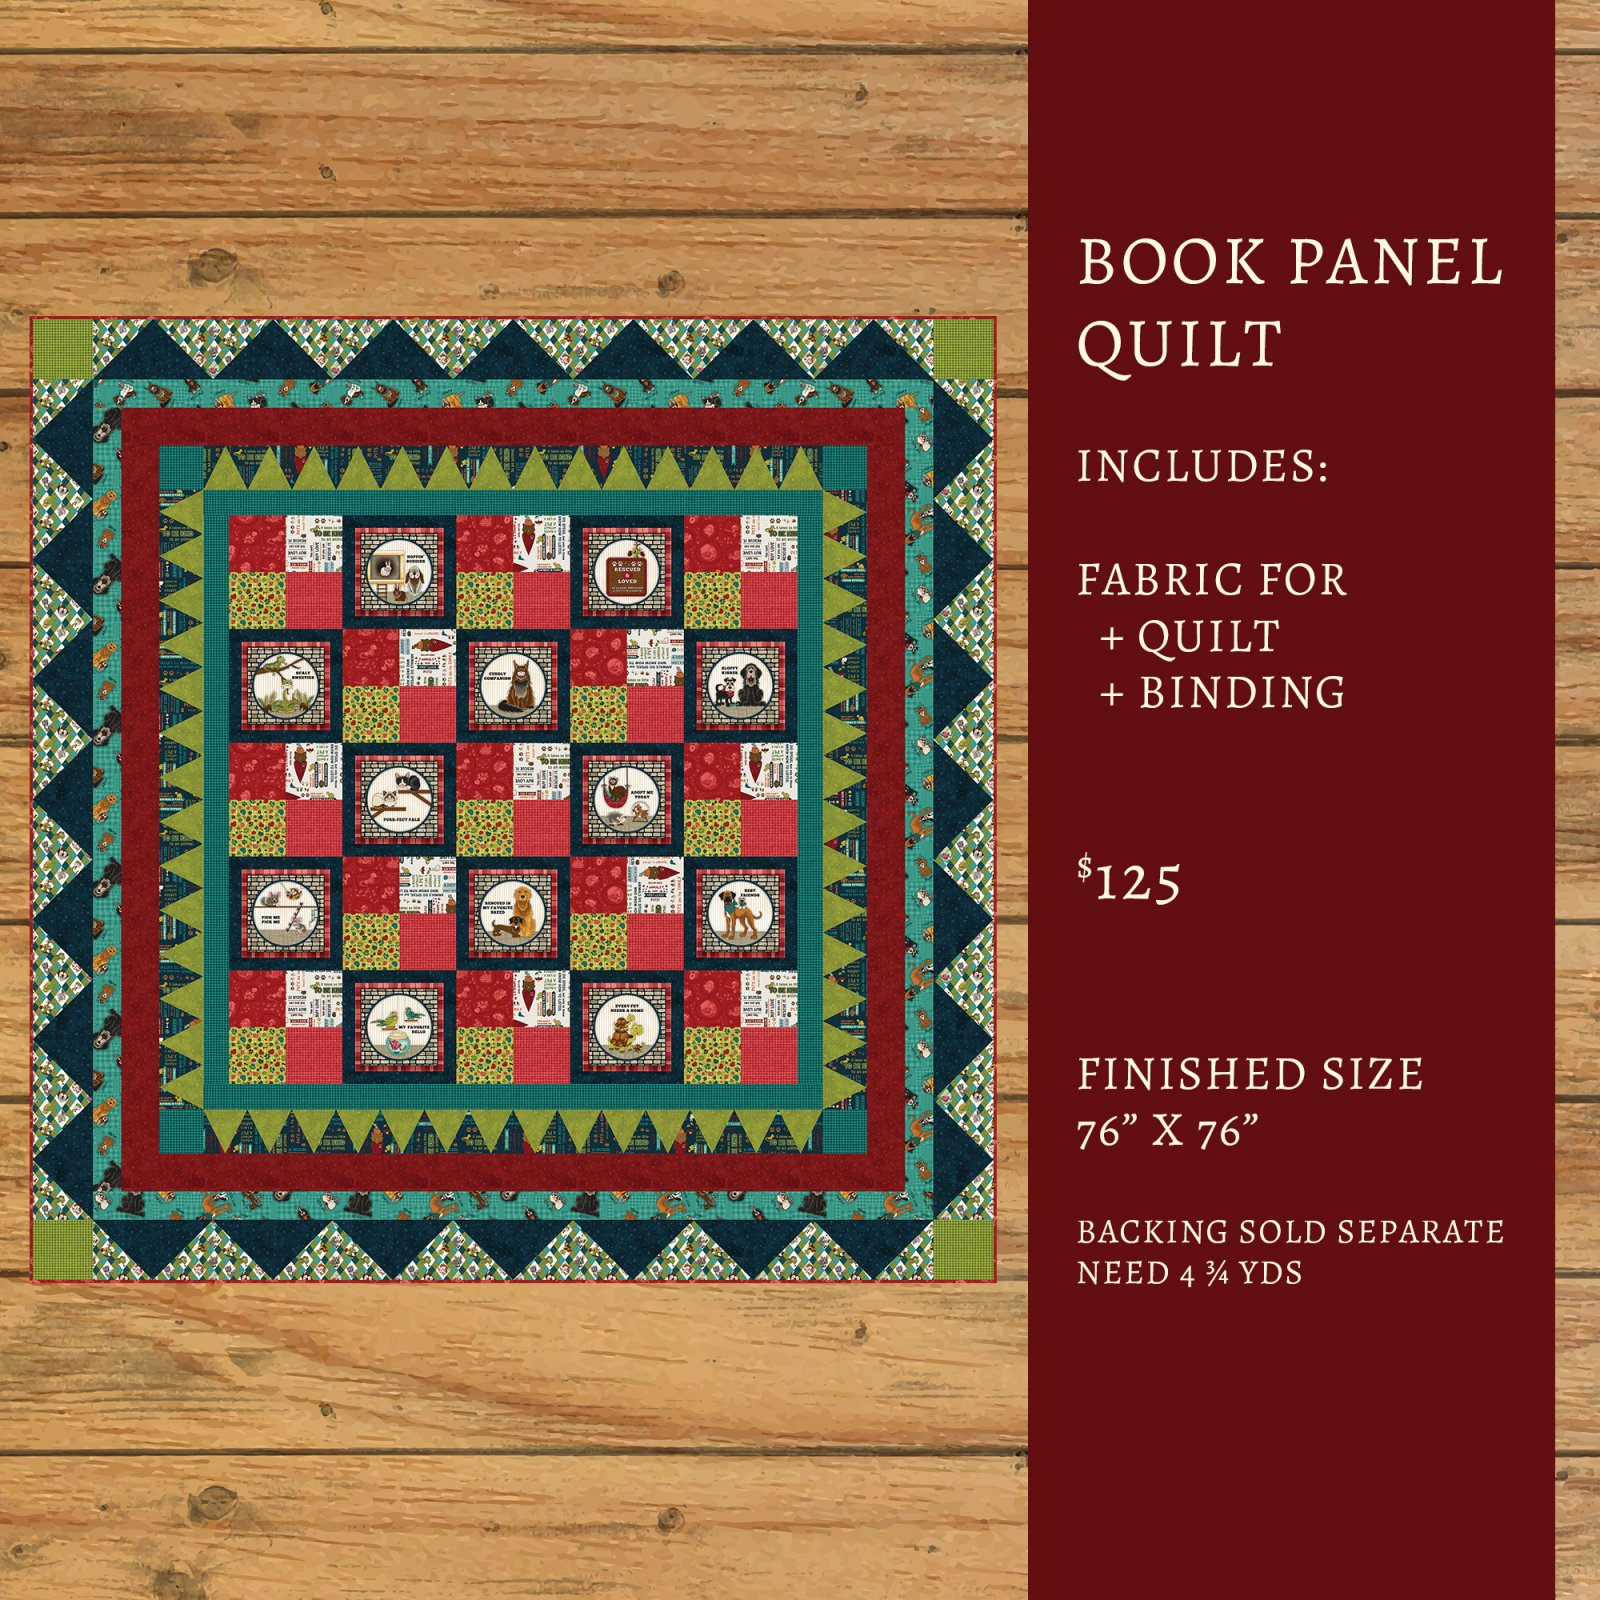 Rescued & Loved Book Panel Quilt Kit